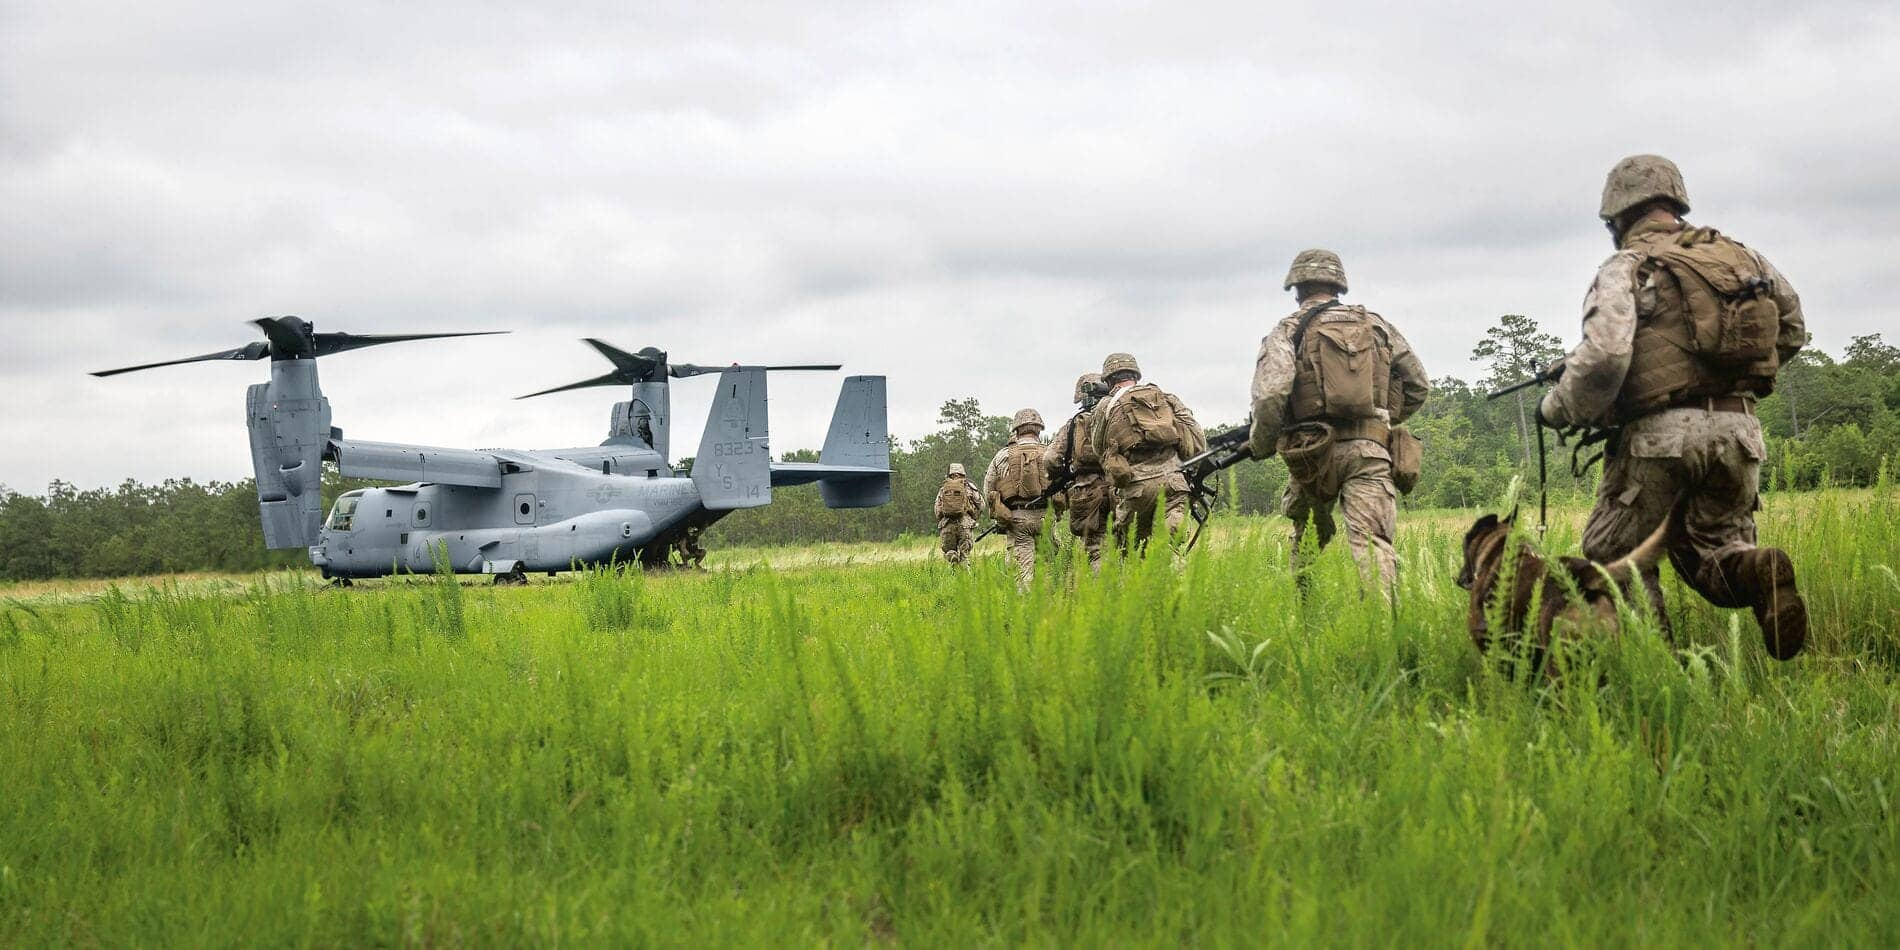 Web_Hero-11-NOVEMBER_Sub1_MV-22_18622692446_1baef34f91_o